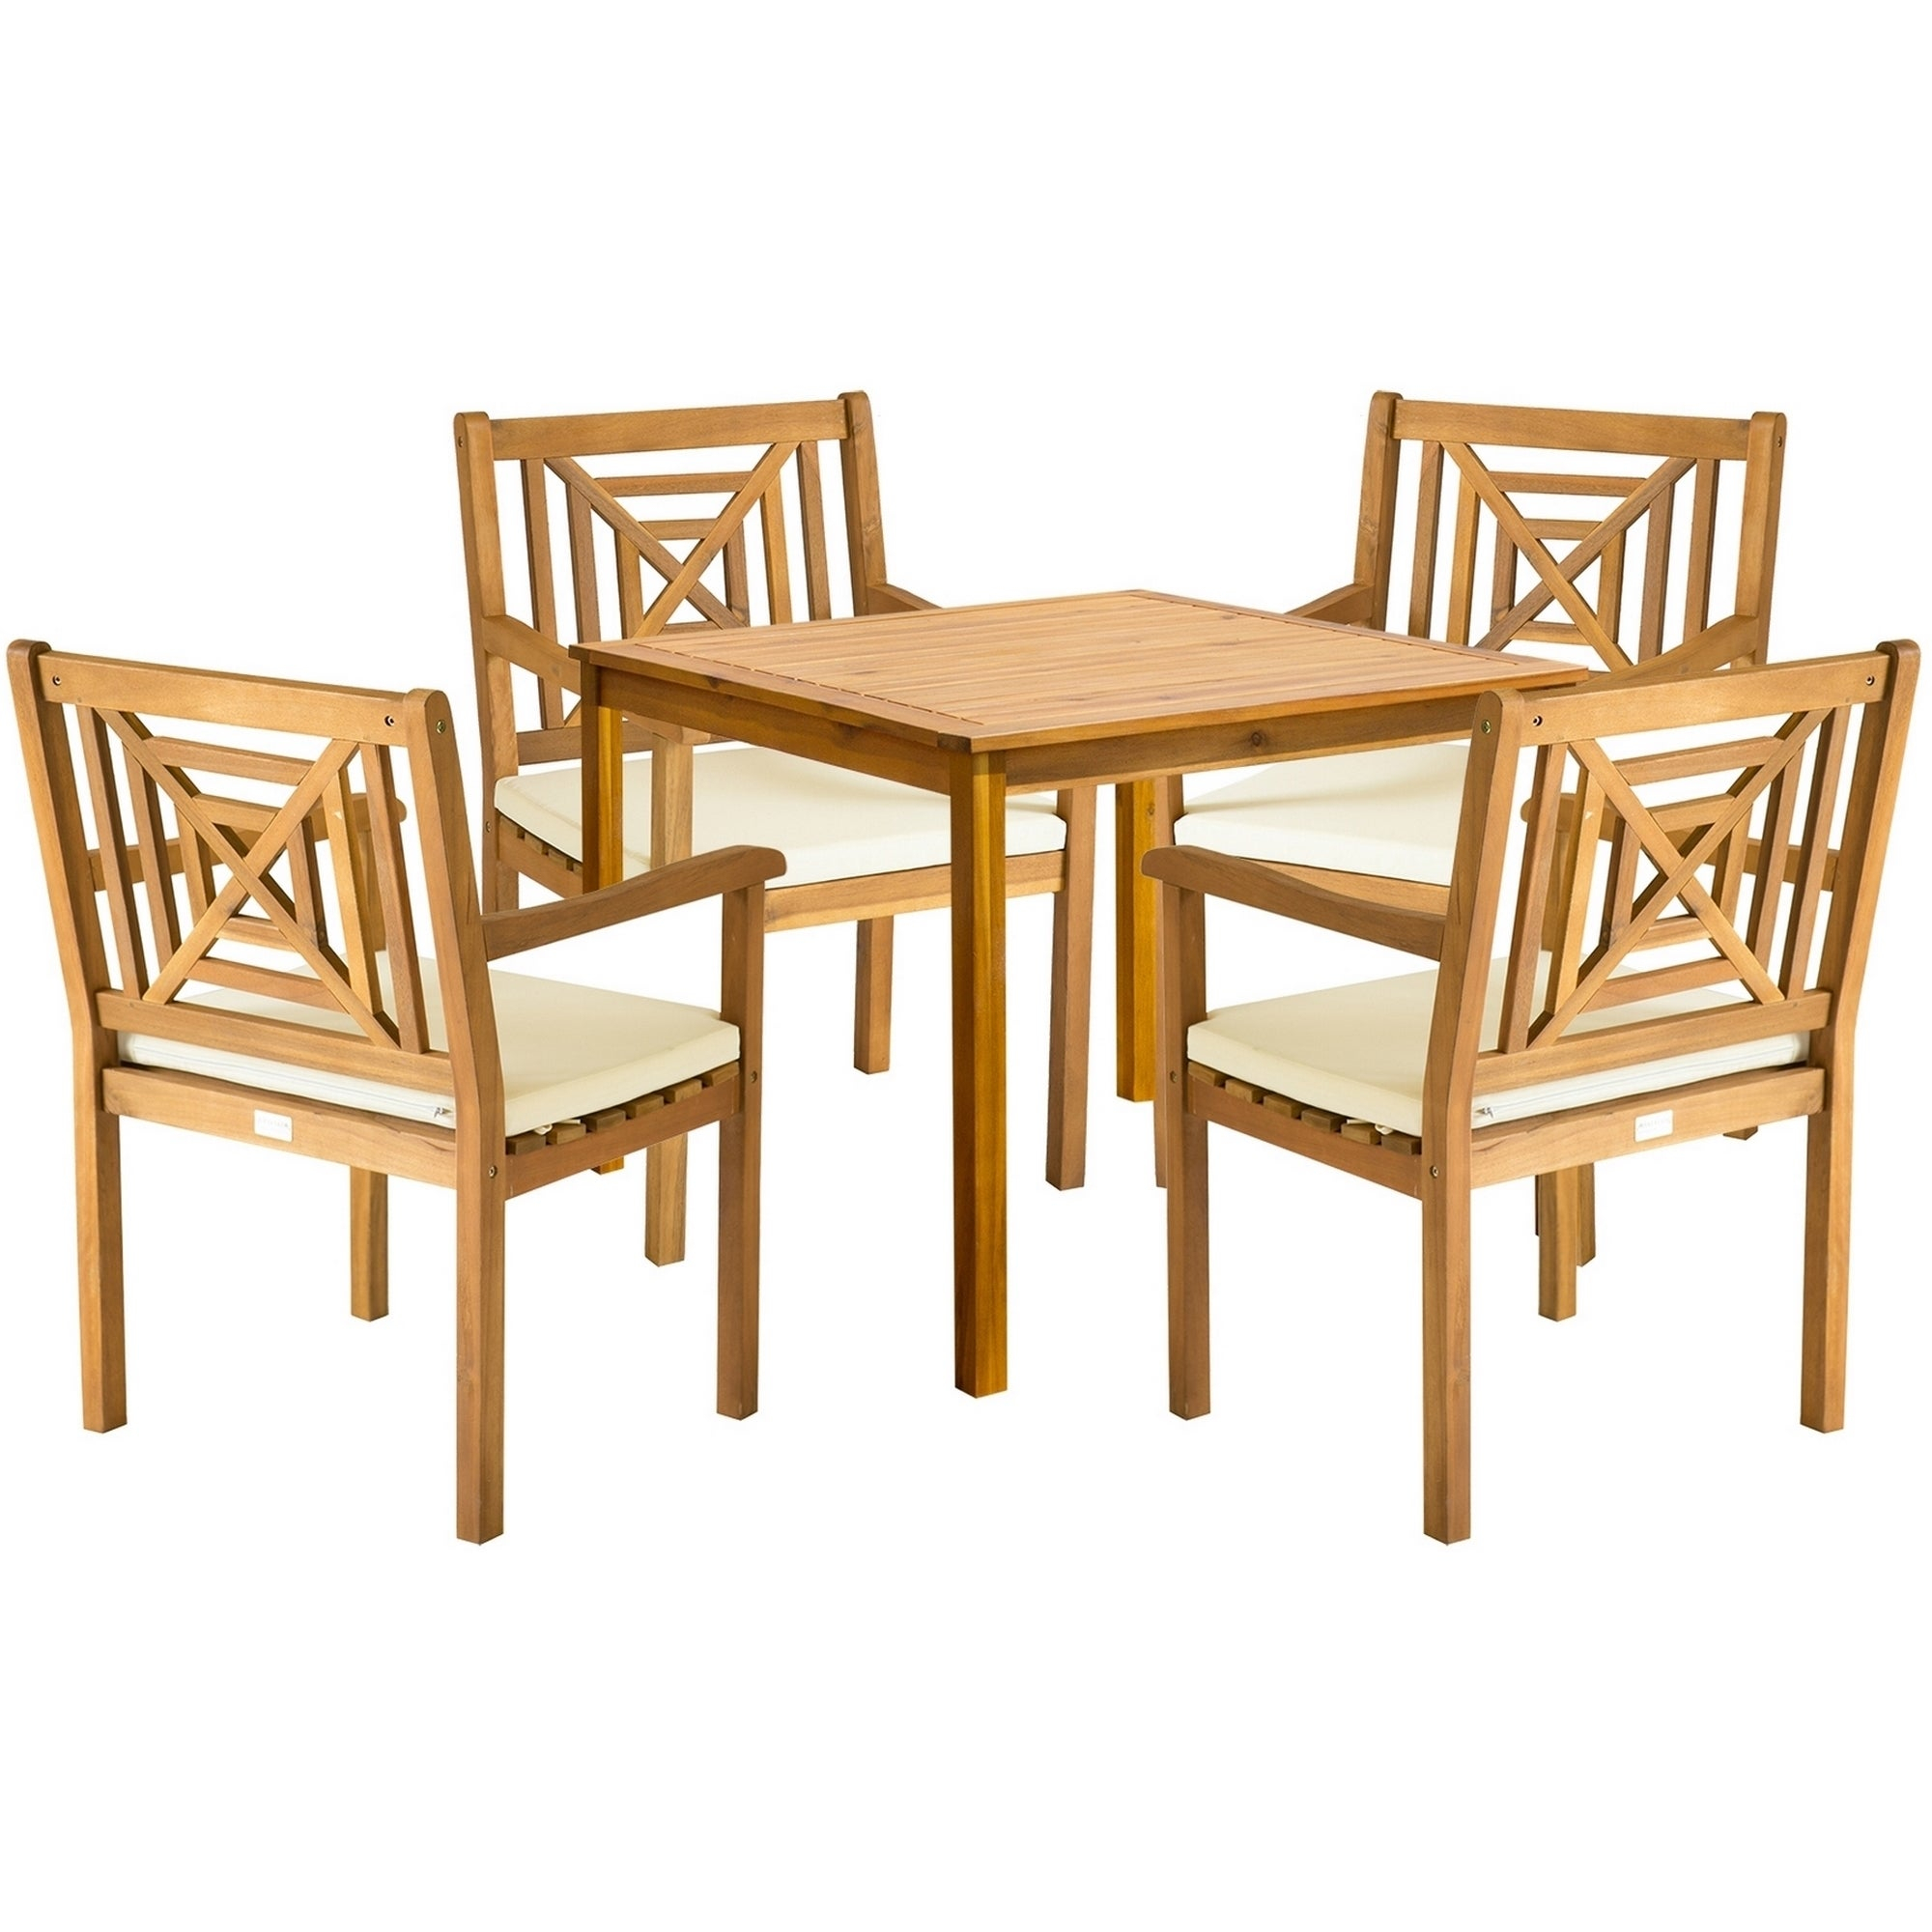 Safavieh Outdoor Living Del Mar Brown Acacia Wood 5 Piece Beige For Latest Delmar 5 Piece Dining Sets (View 12 of 20)